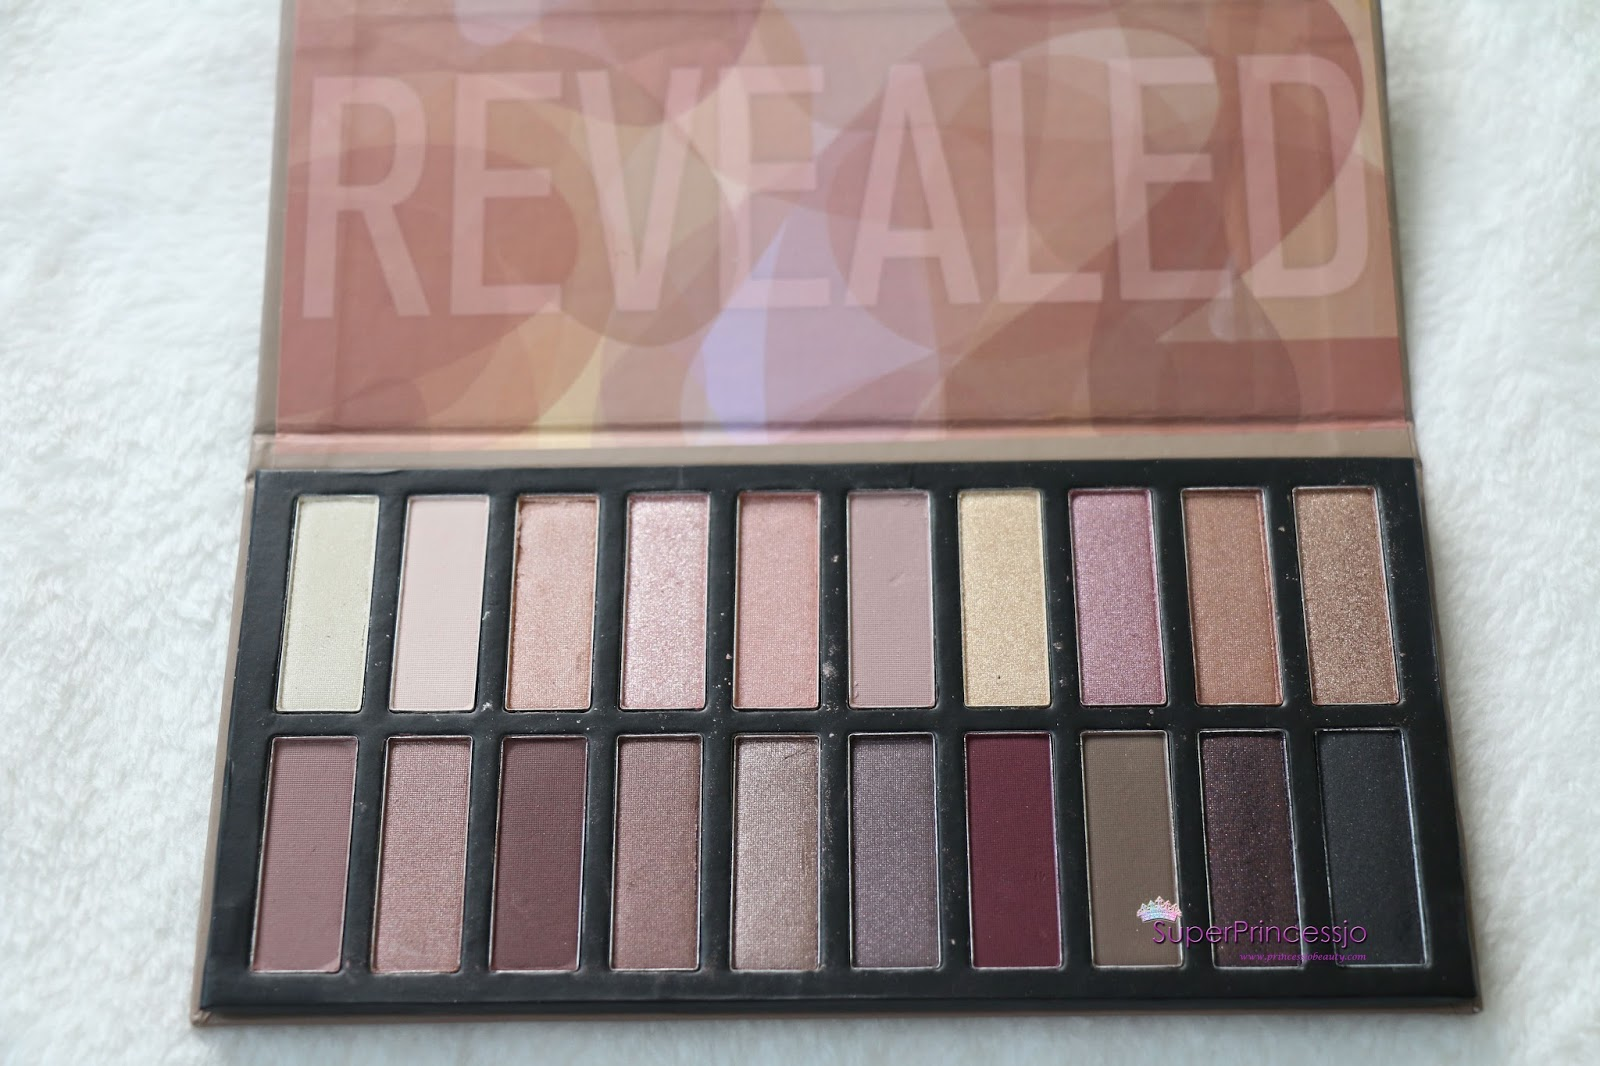 COASTAL SCENTS REVEALED PALETTE DUPE FOR NAKED 1 NAKED 2